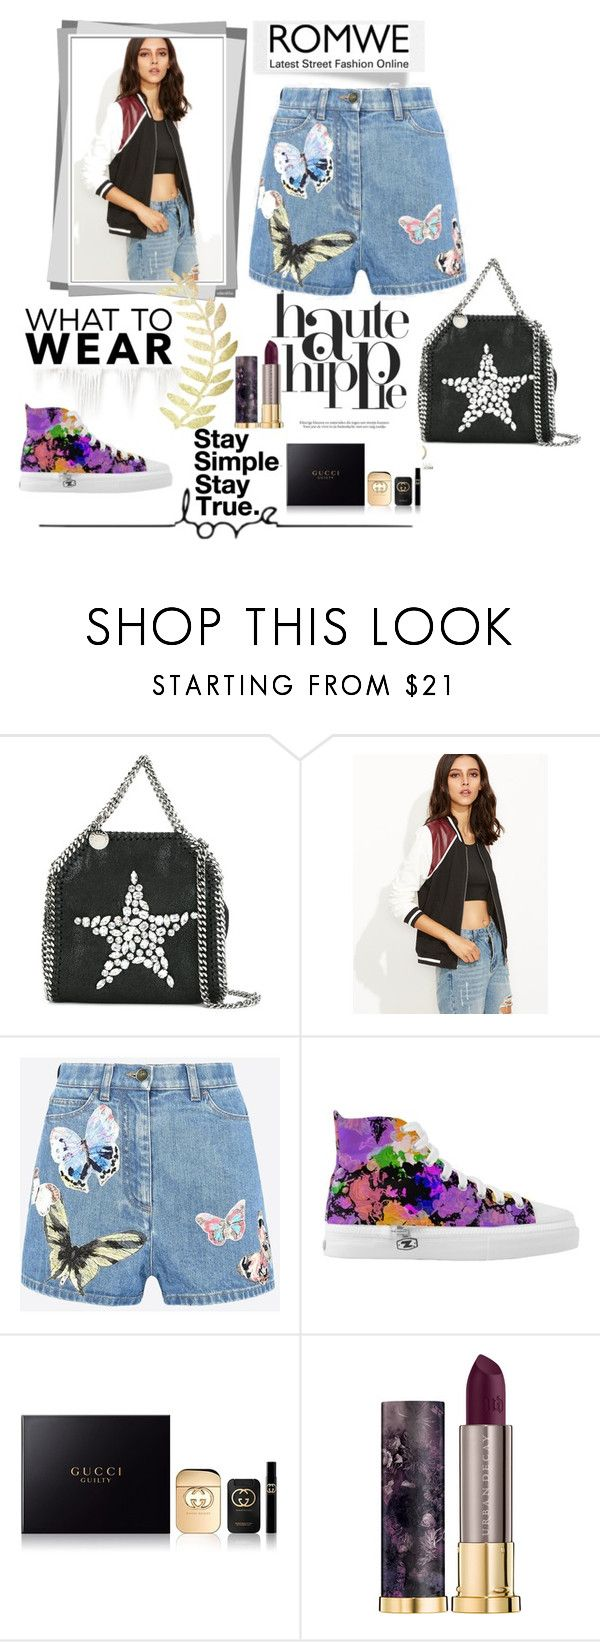 """""""ROMWE"""" by celenk ❤ liked on Polyvore featuring Haute Hippie, STELLA McCARTNEY, Valentino, Gucci and Urban Decay"""